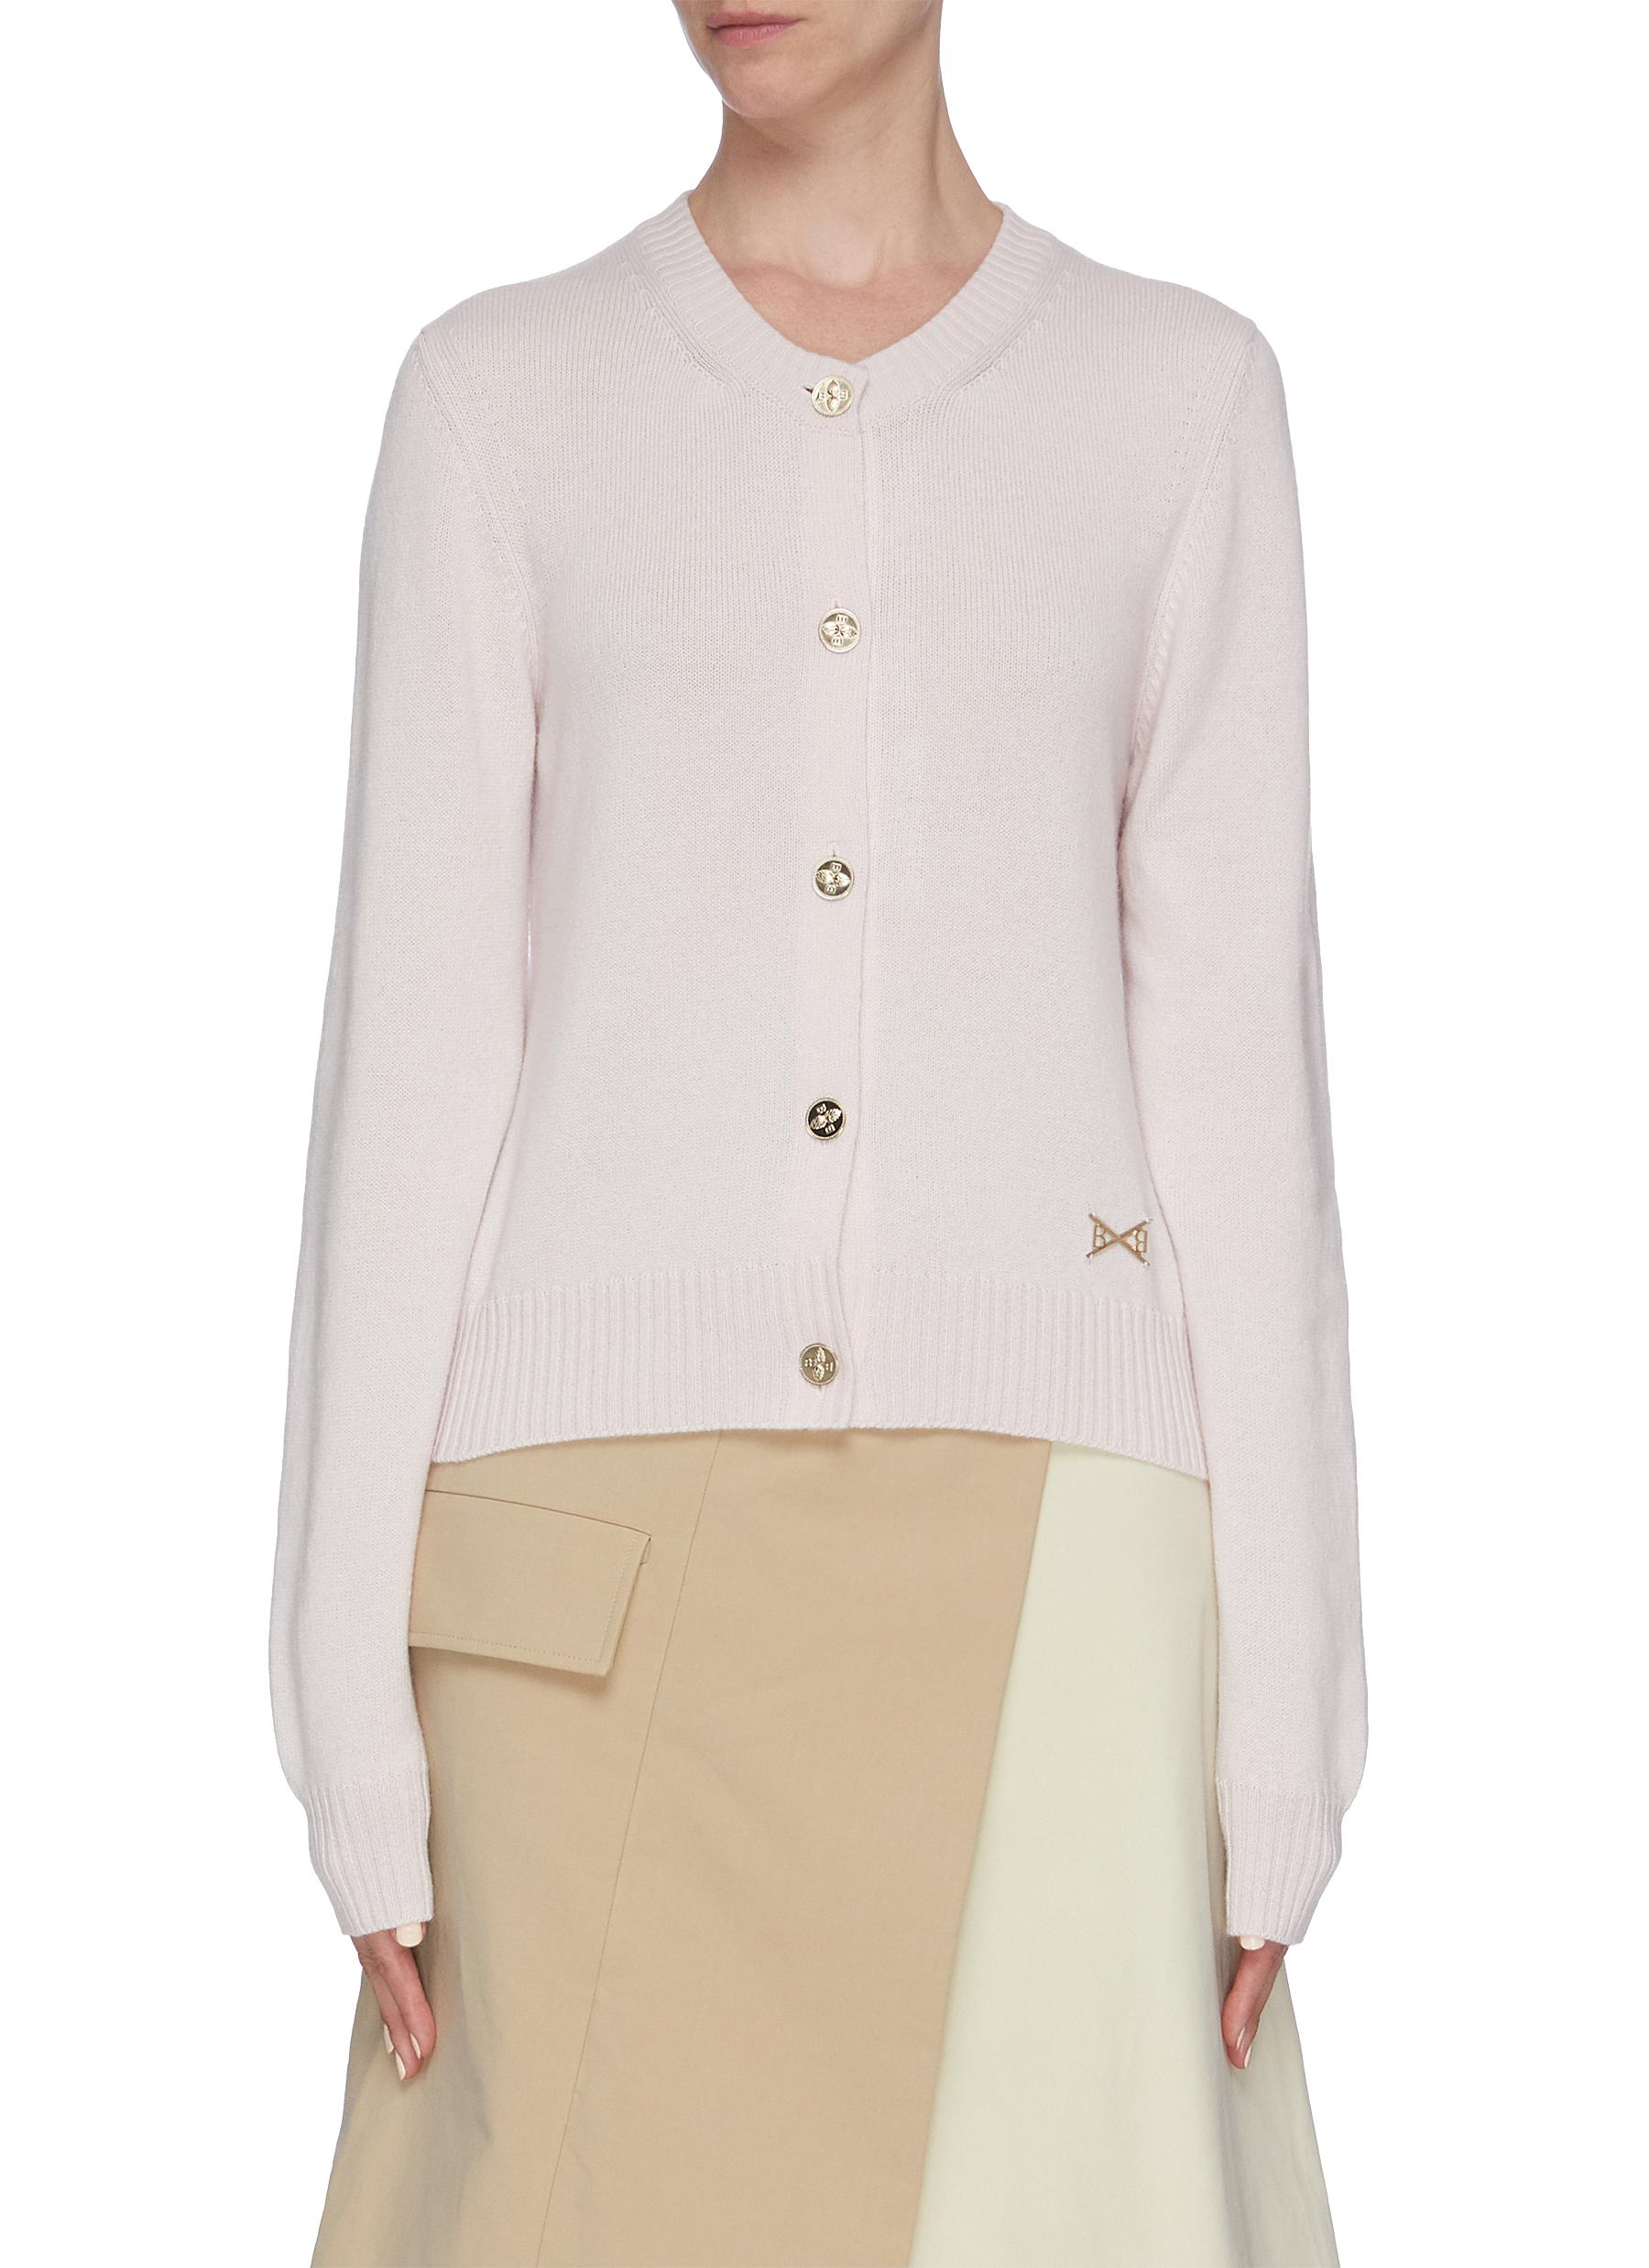 Cashmere cardigan by Barrie